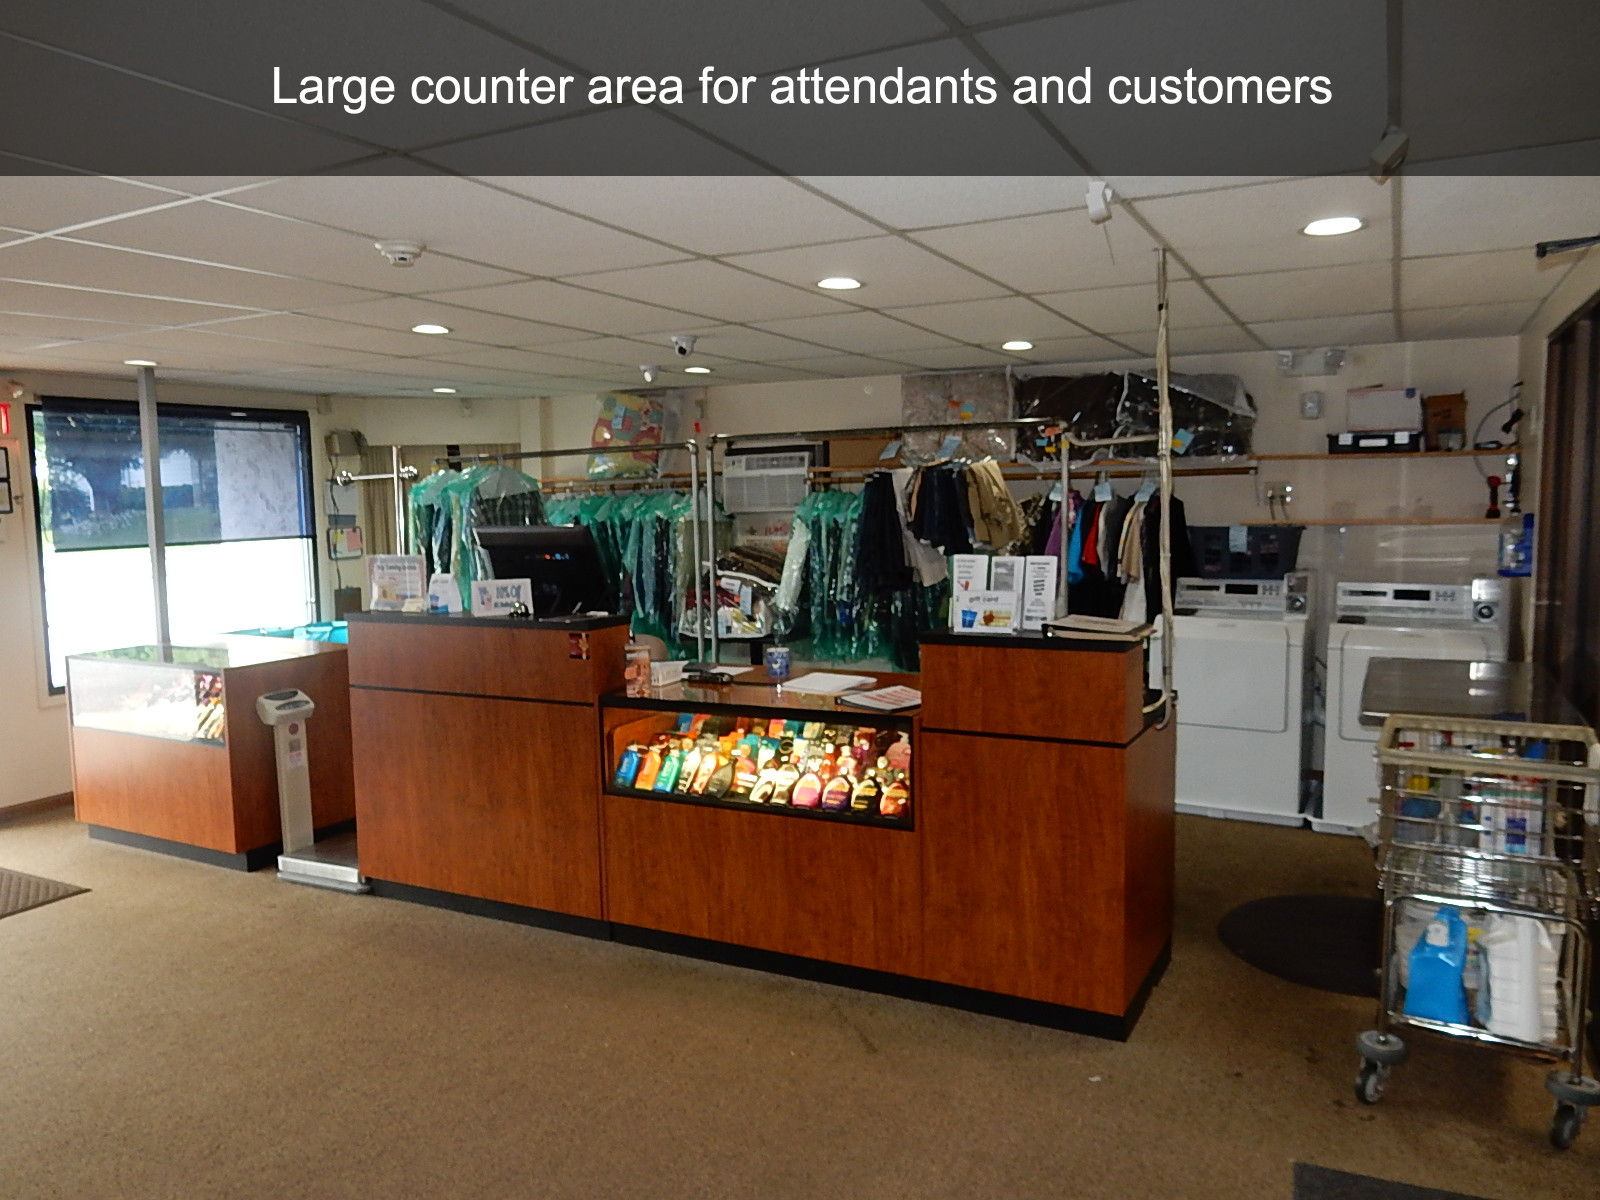 Large counter area for attendants and customers